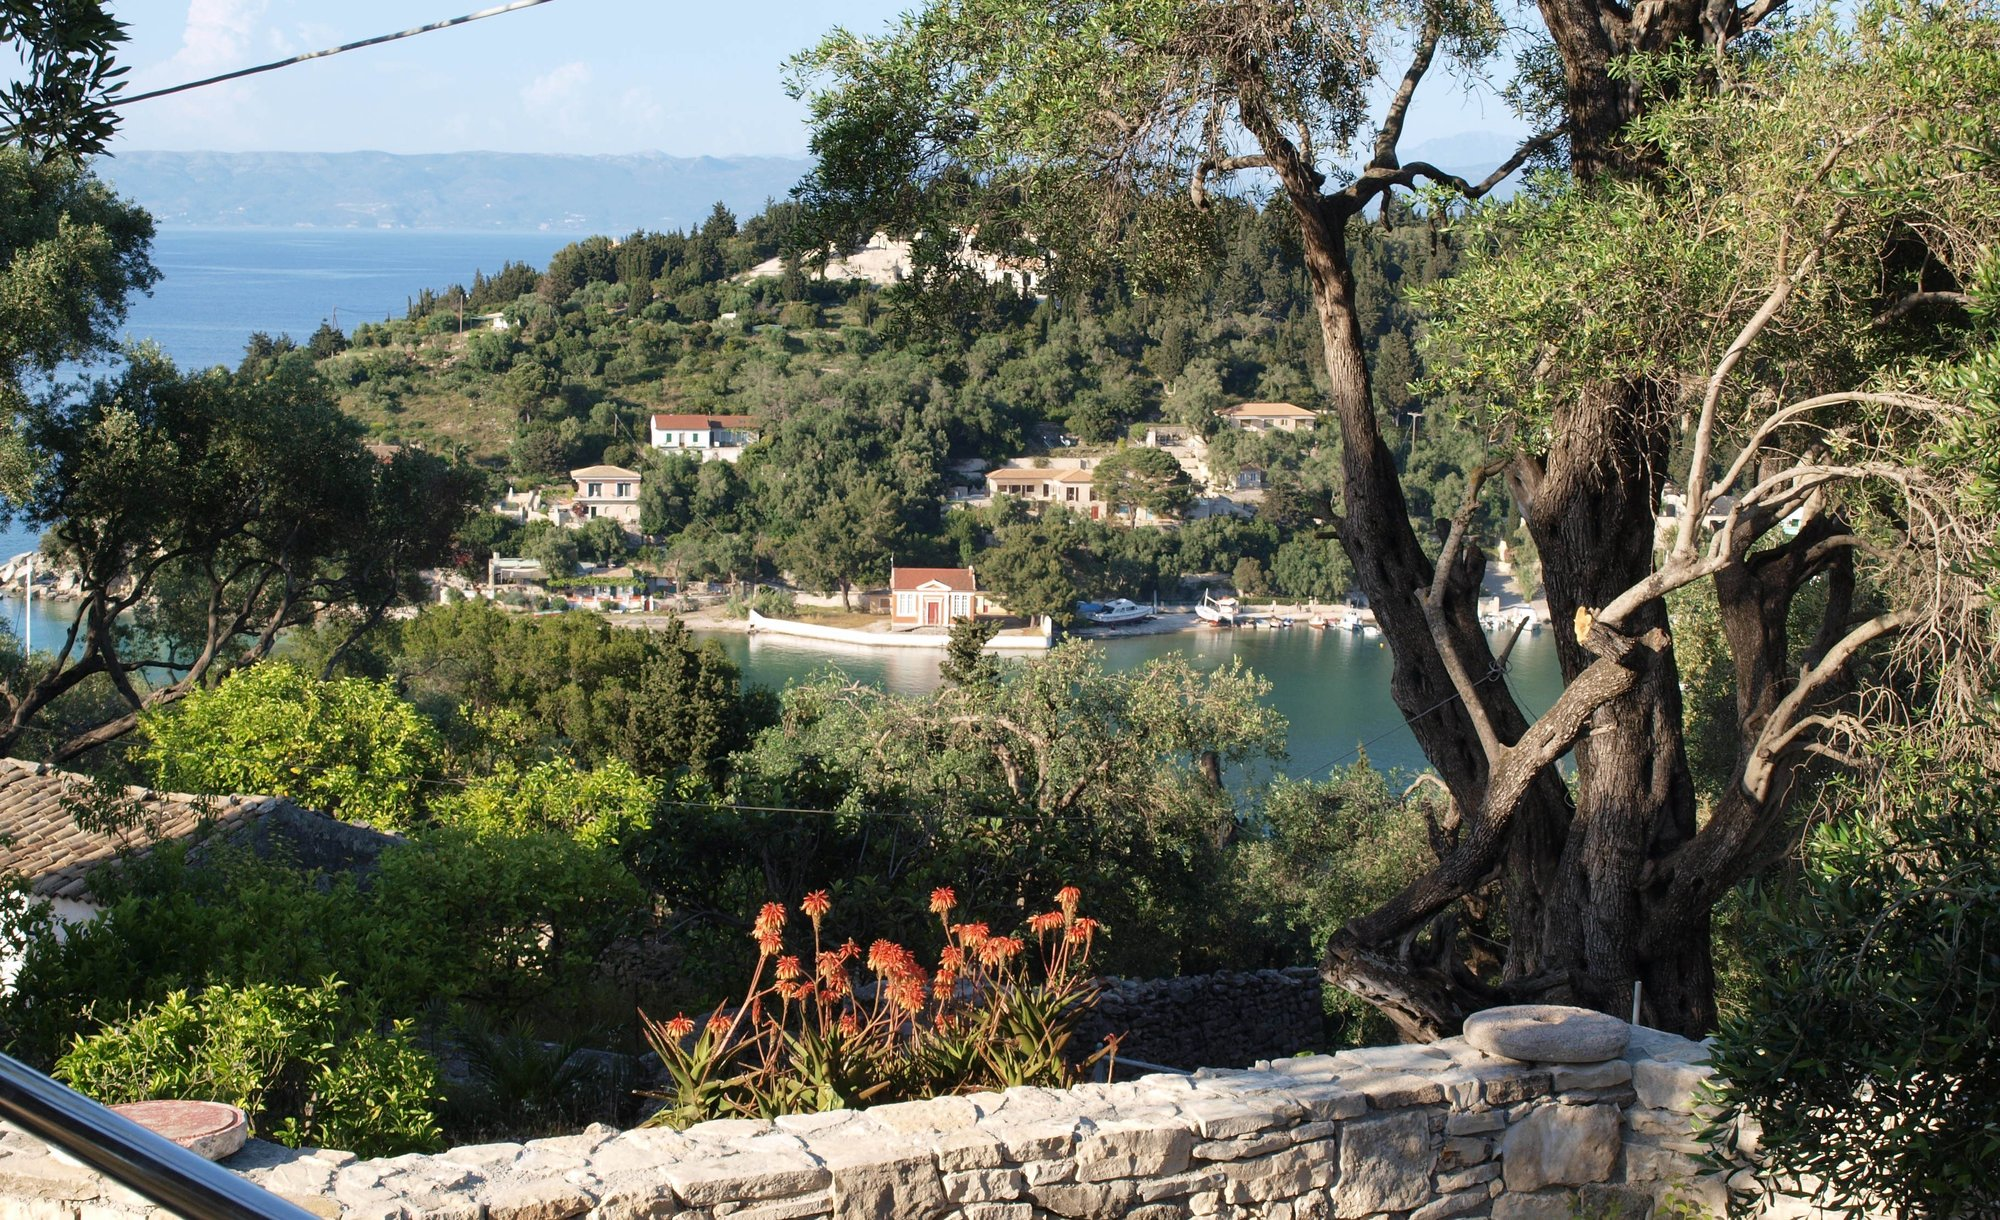 Elissa's view over Lakka Bay